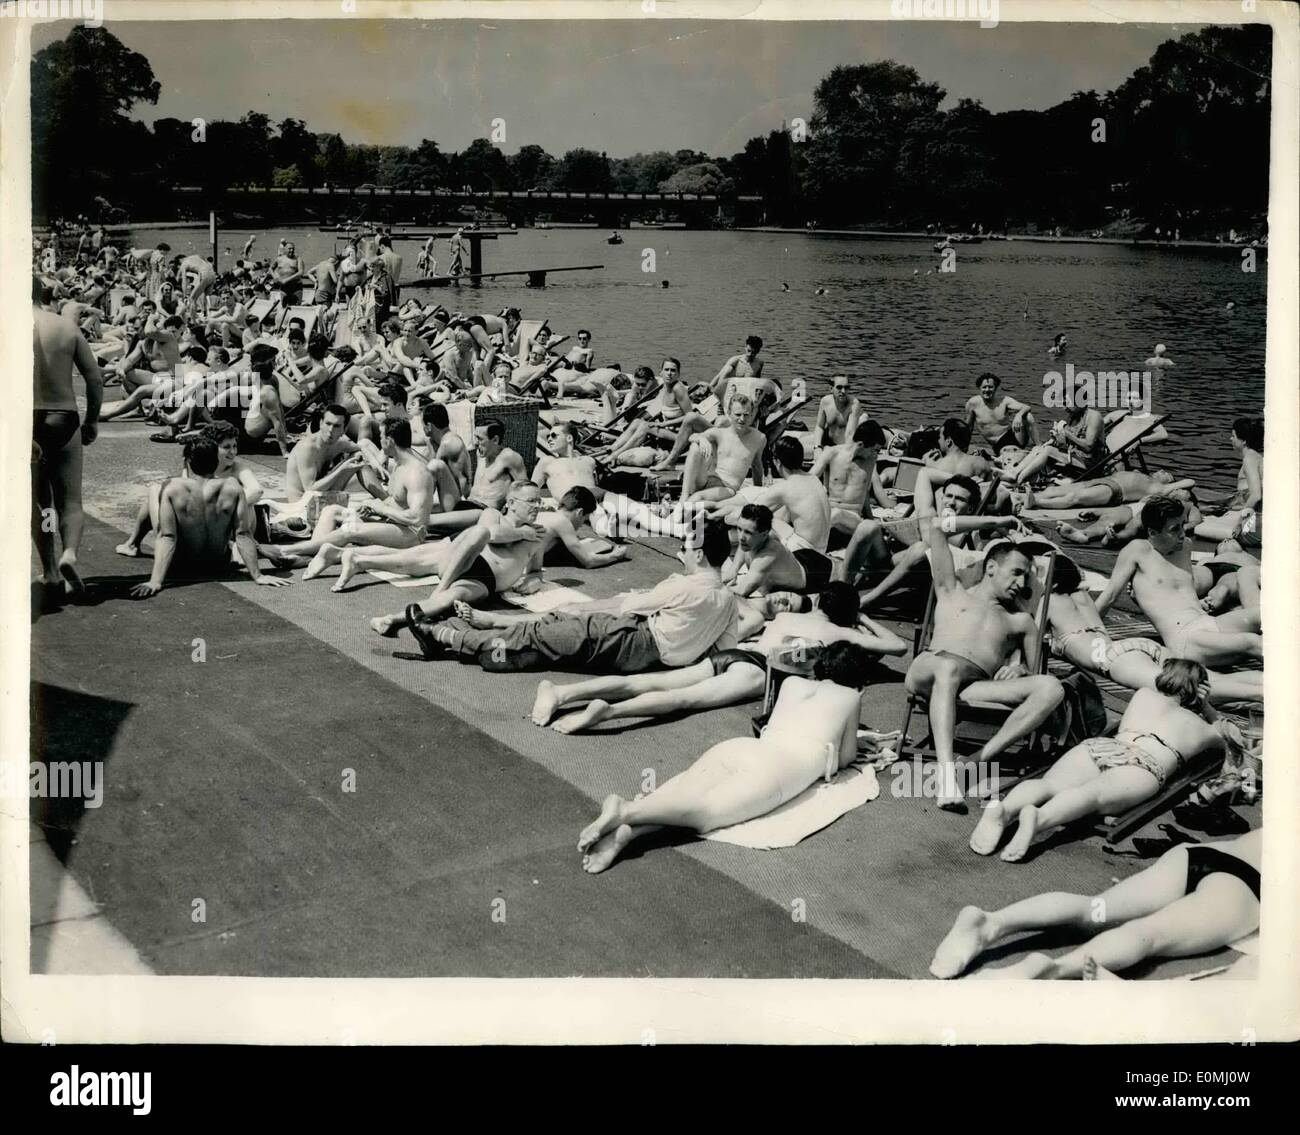 Jun. 06, 1955 - Hot Weather Scenes in London: Scene on the Lido. Photo Shows The scene at the Hyde Park Lido yesterday as Londoners made the most of the brilliant sunshine. - Stock Image